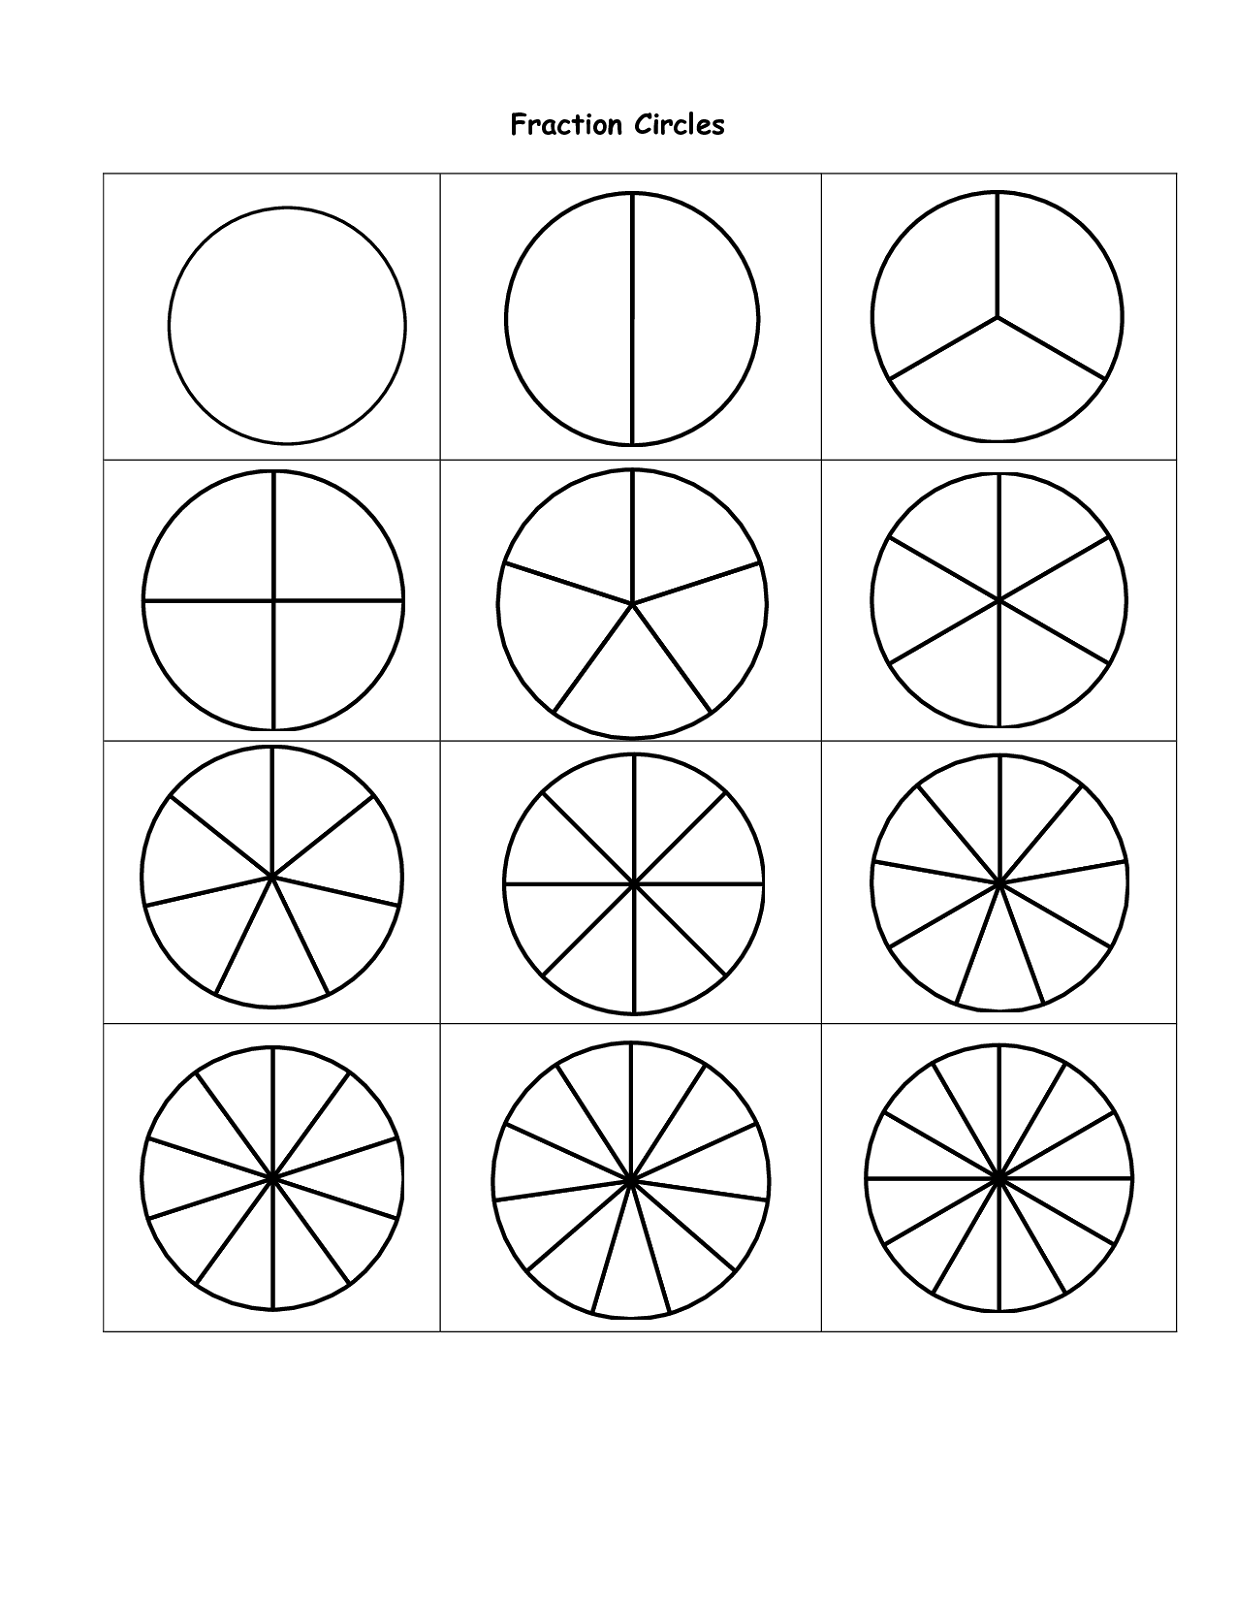 Percent circle templates printable activity shelter for Circle templates to print